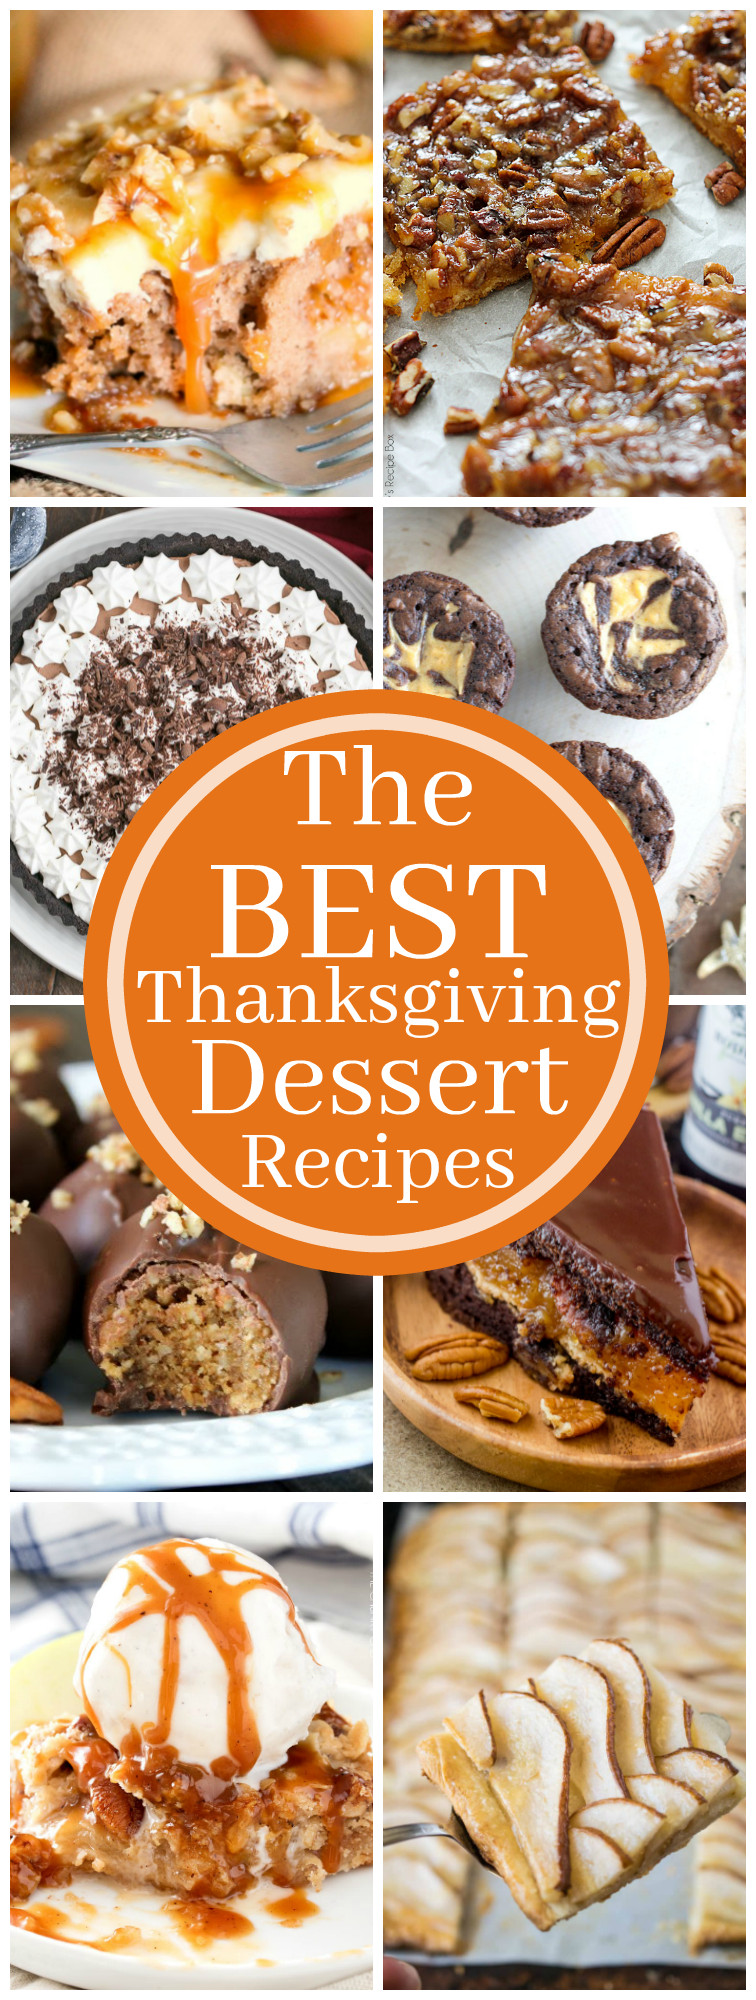 Best Turkey Recipes For Thanksgiving  The Best Thanksgiving Dessert Recipes The Chunky Chef